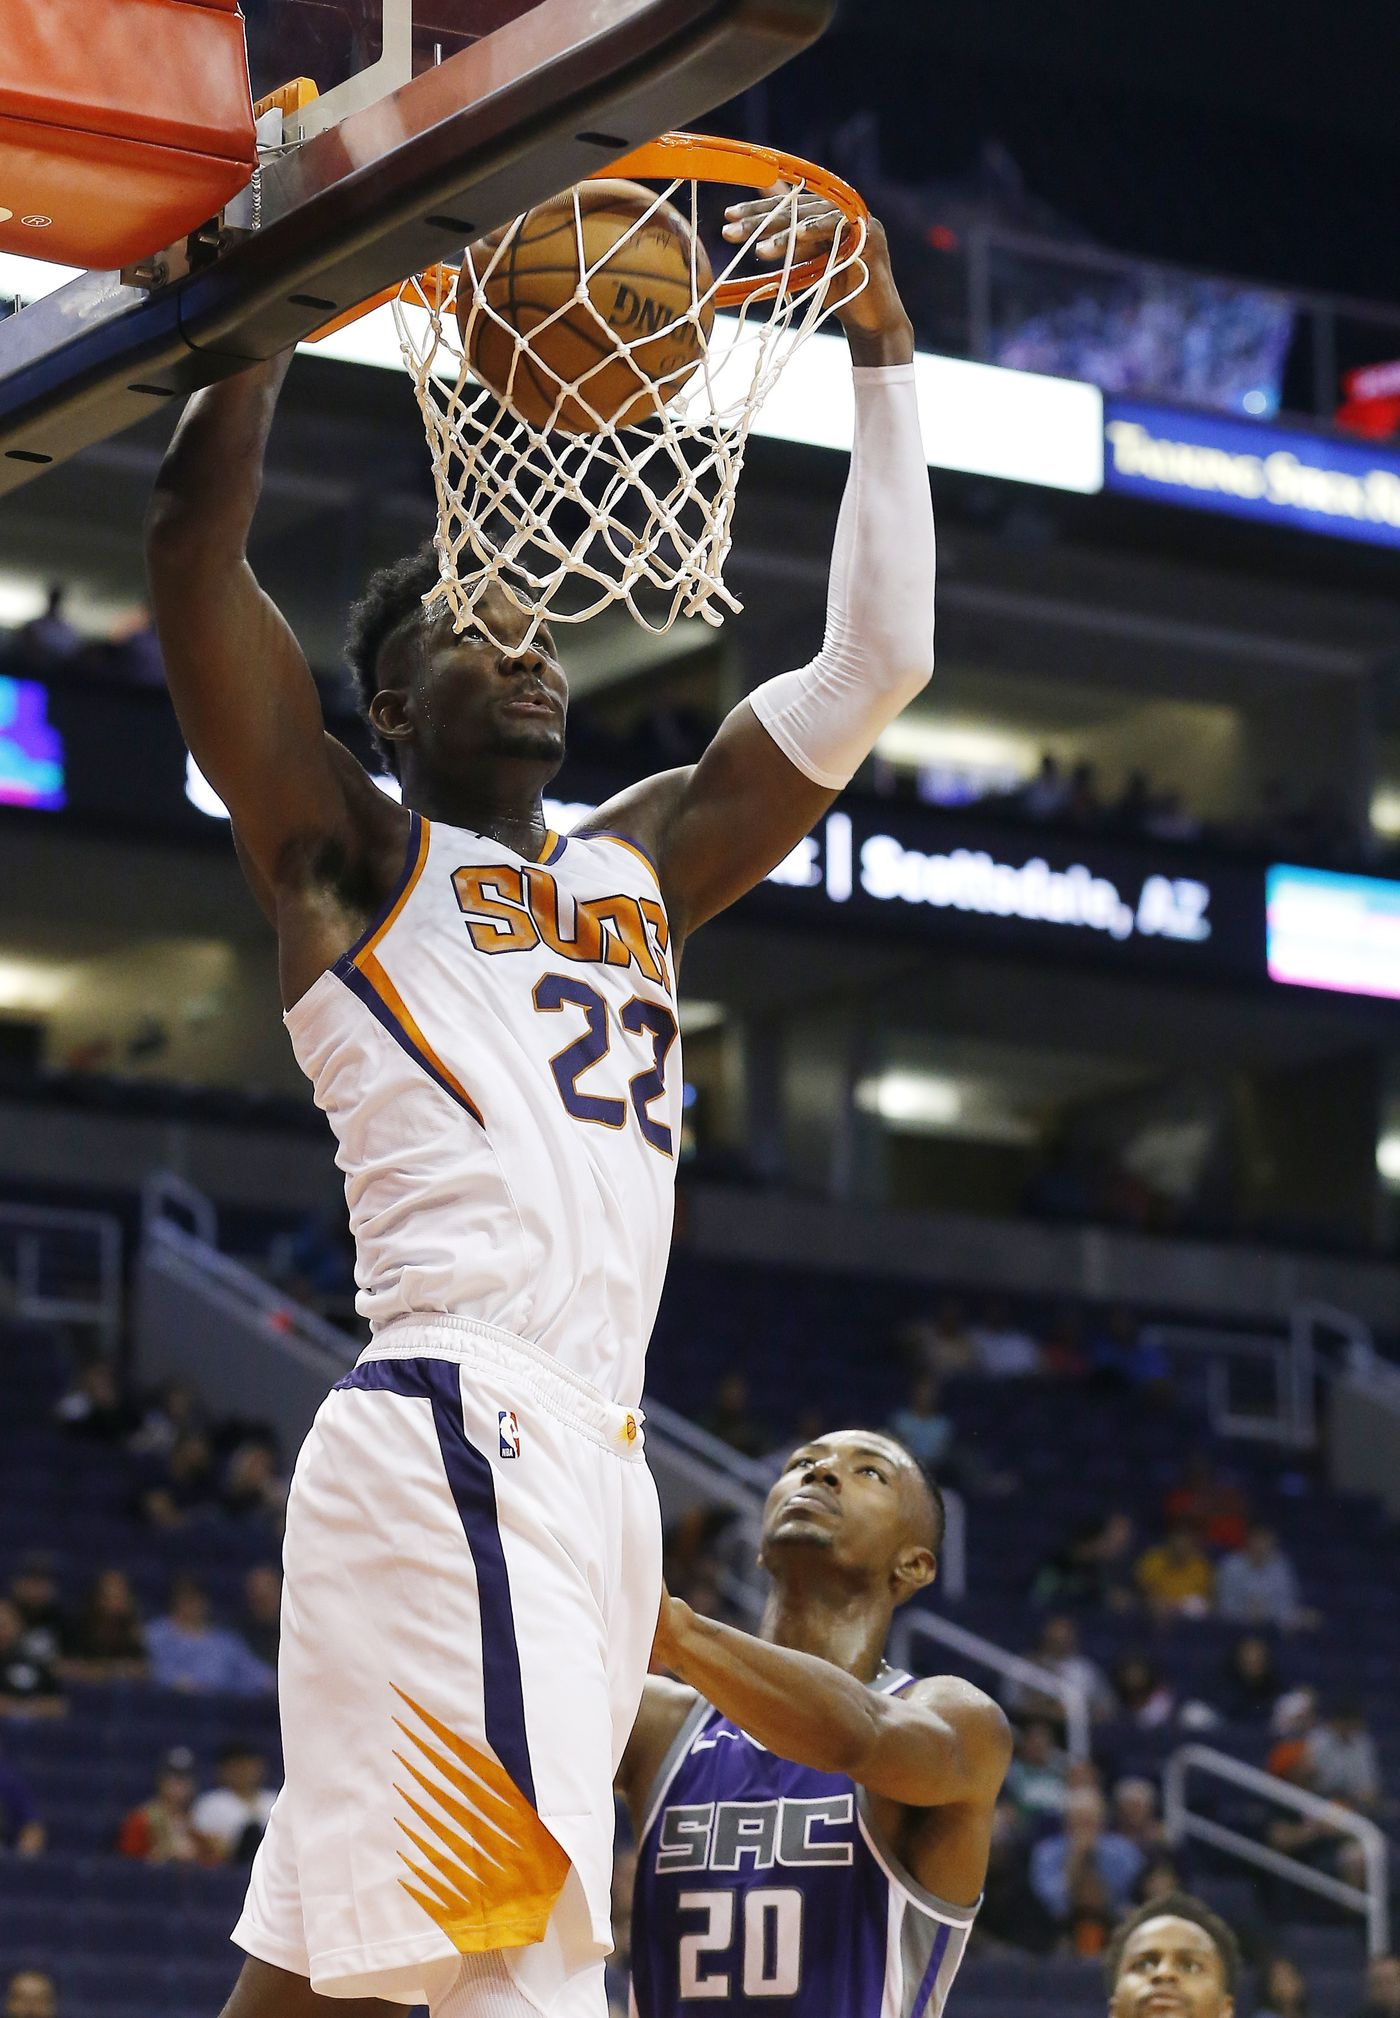 Dominant Debut For No 1 Pick Ayton In Suns Exhibition Game